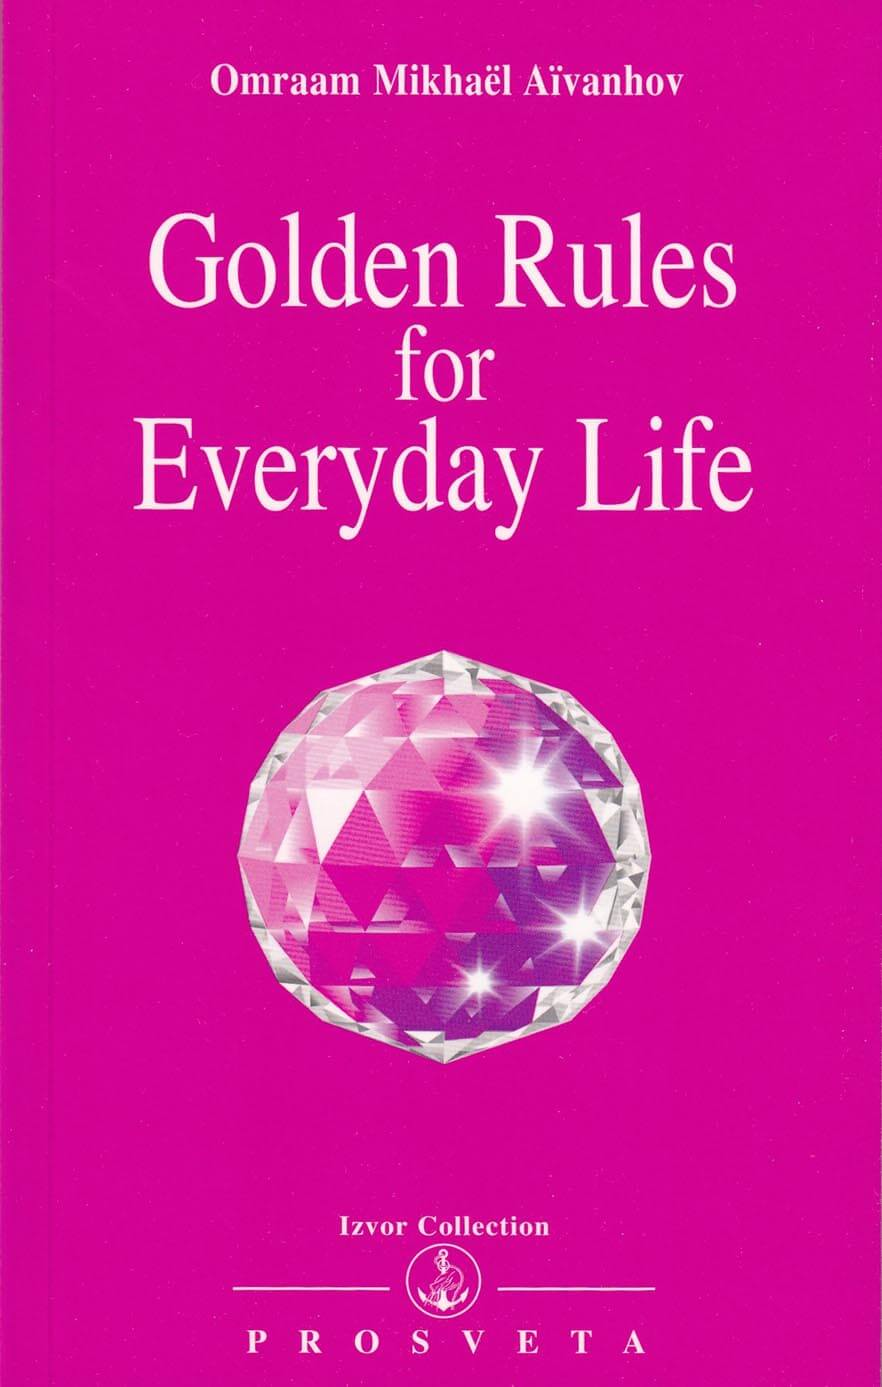 Golden Rules for Everyday Life